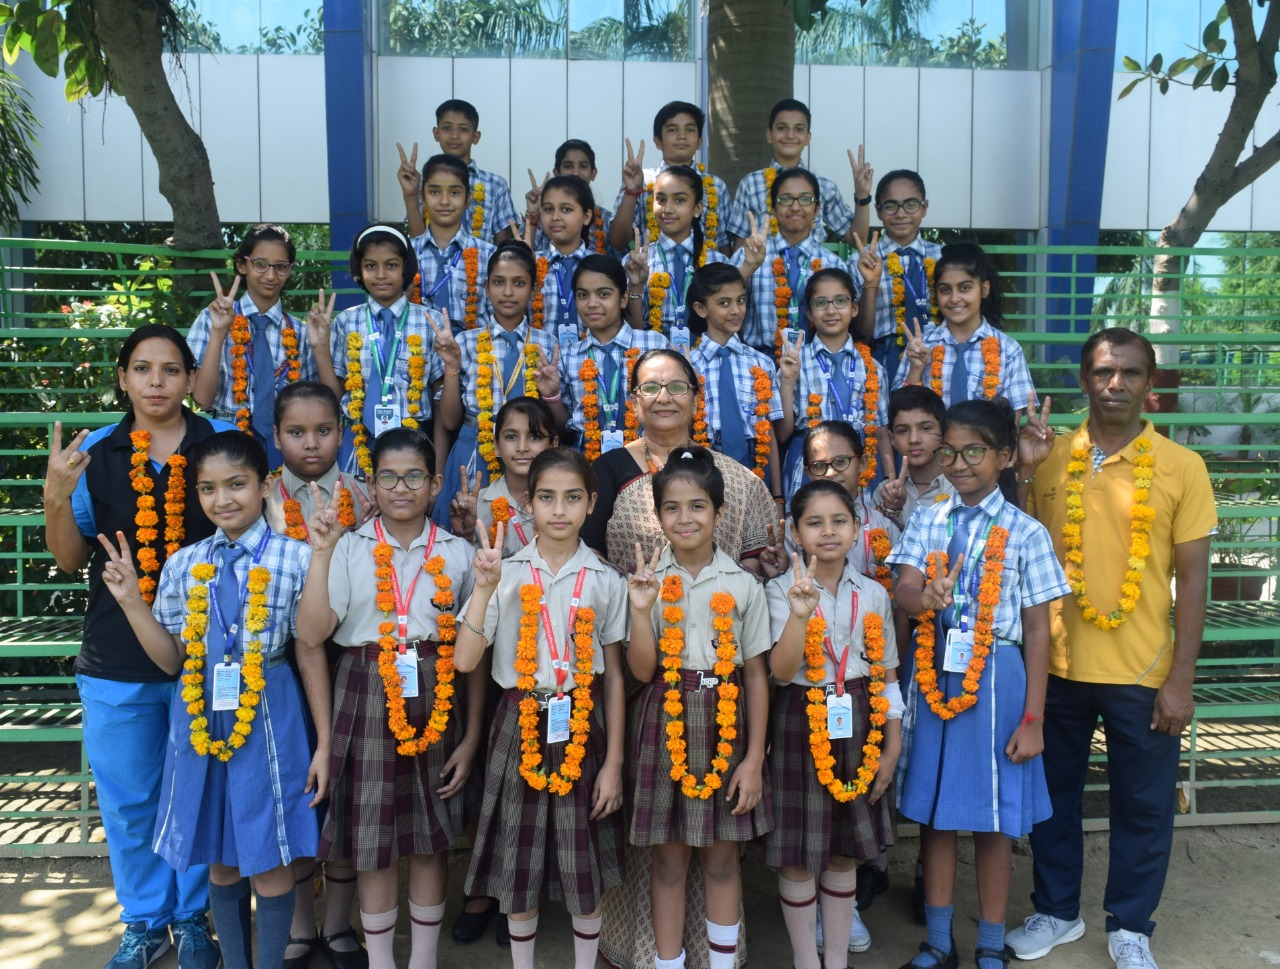 Little Angels School wins 31Gold, 16 Silver & 6 Bronze Medals in District Level Gymnastics Championship